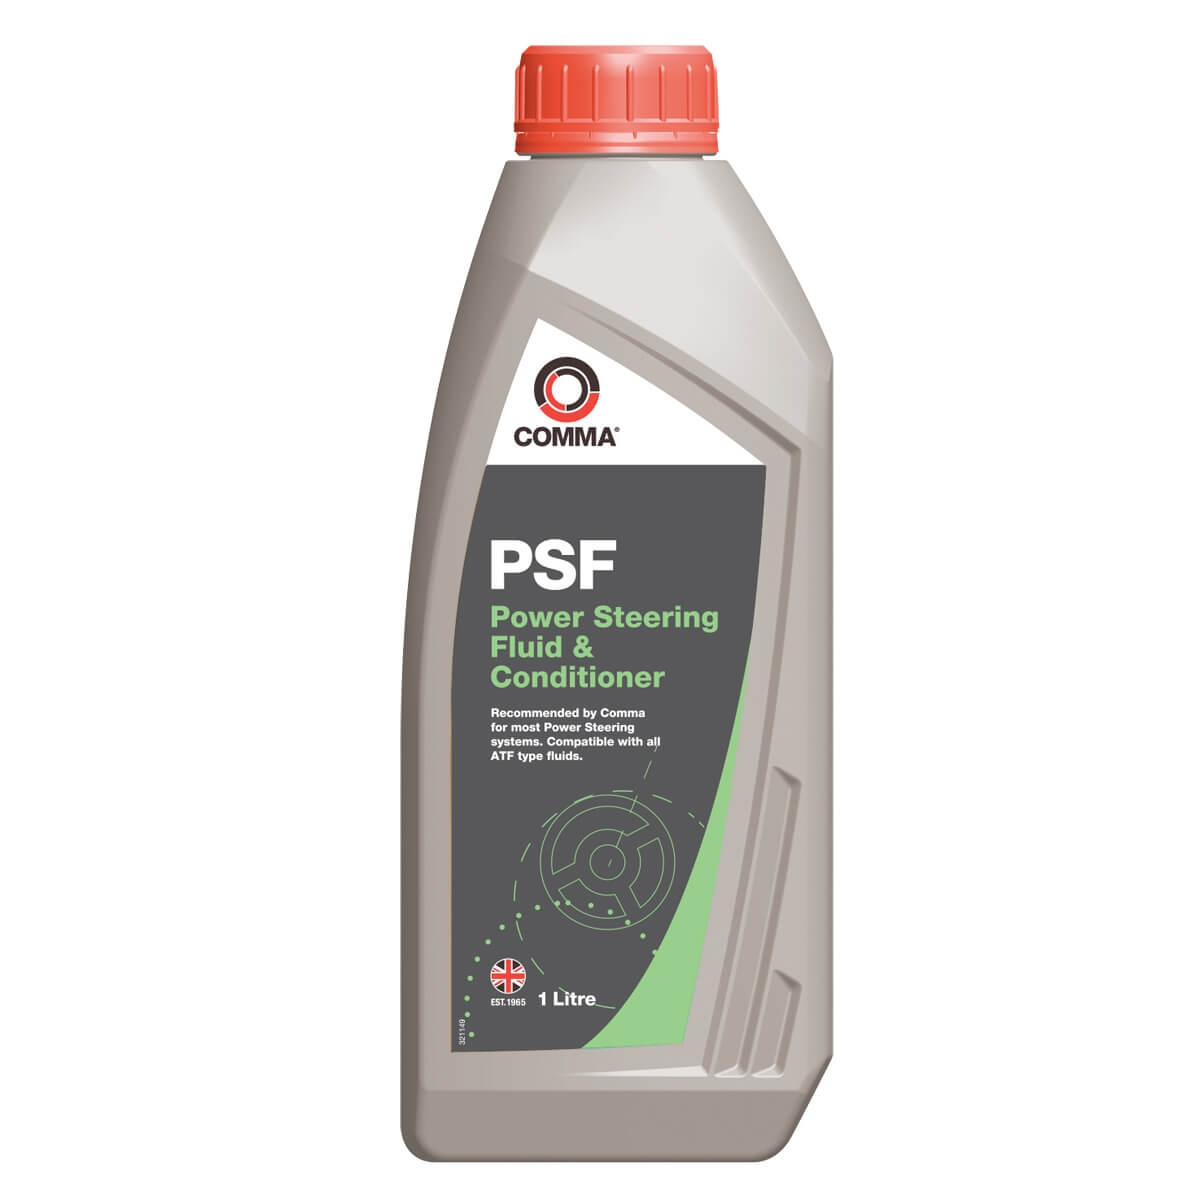 FIAT BRAVO Power Steering Oil